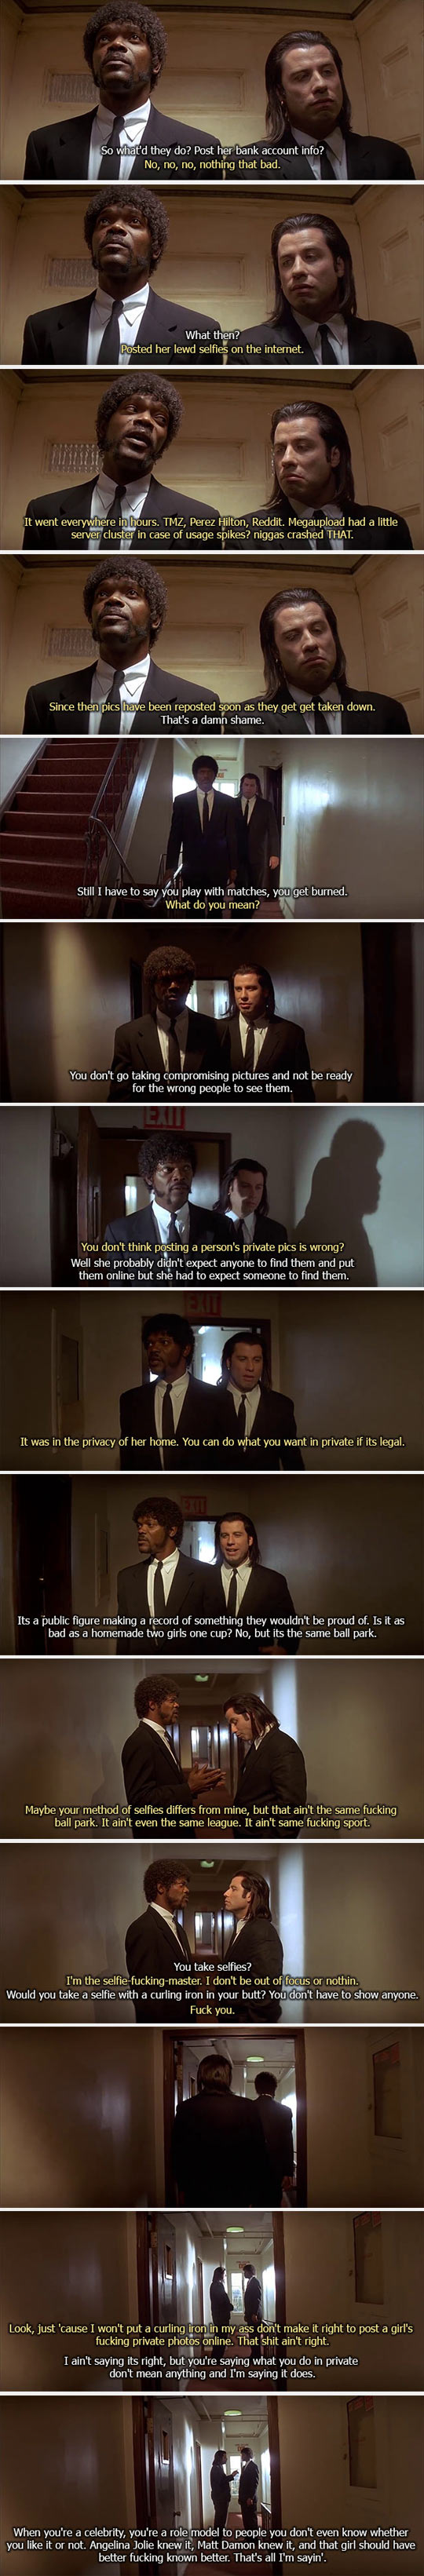 funny-dissenting-opinion-Pulp-Fiction-Scene-hacking